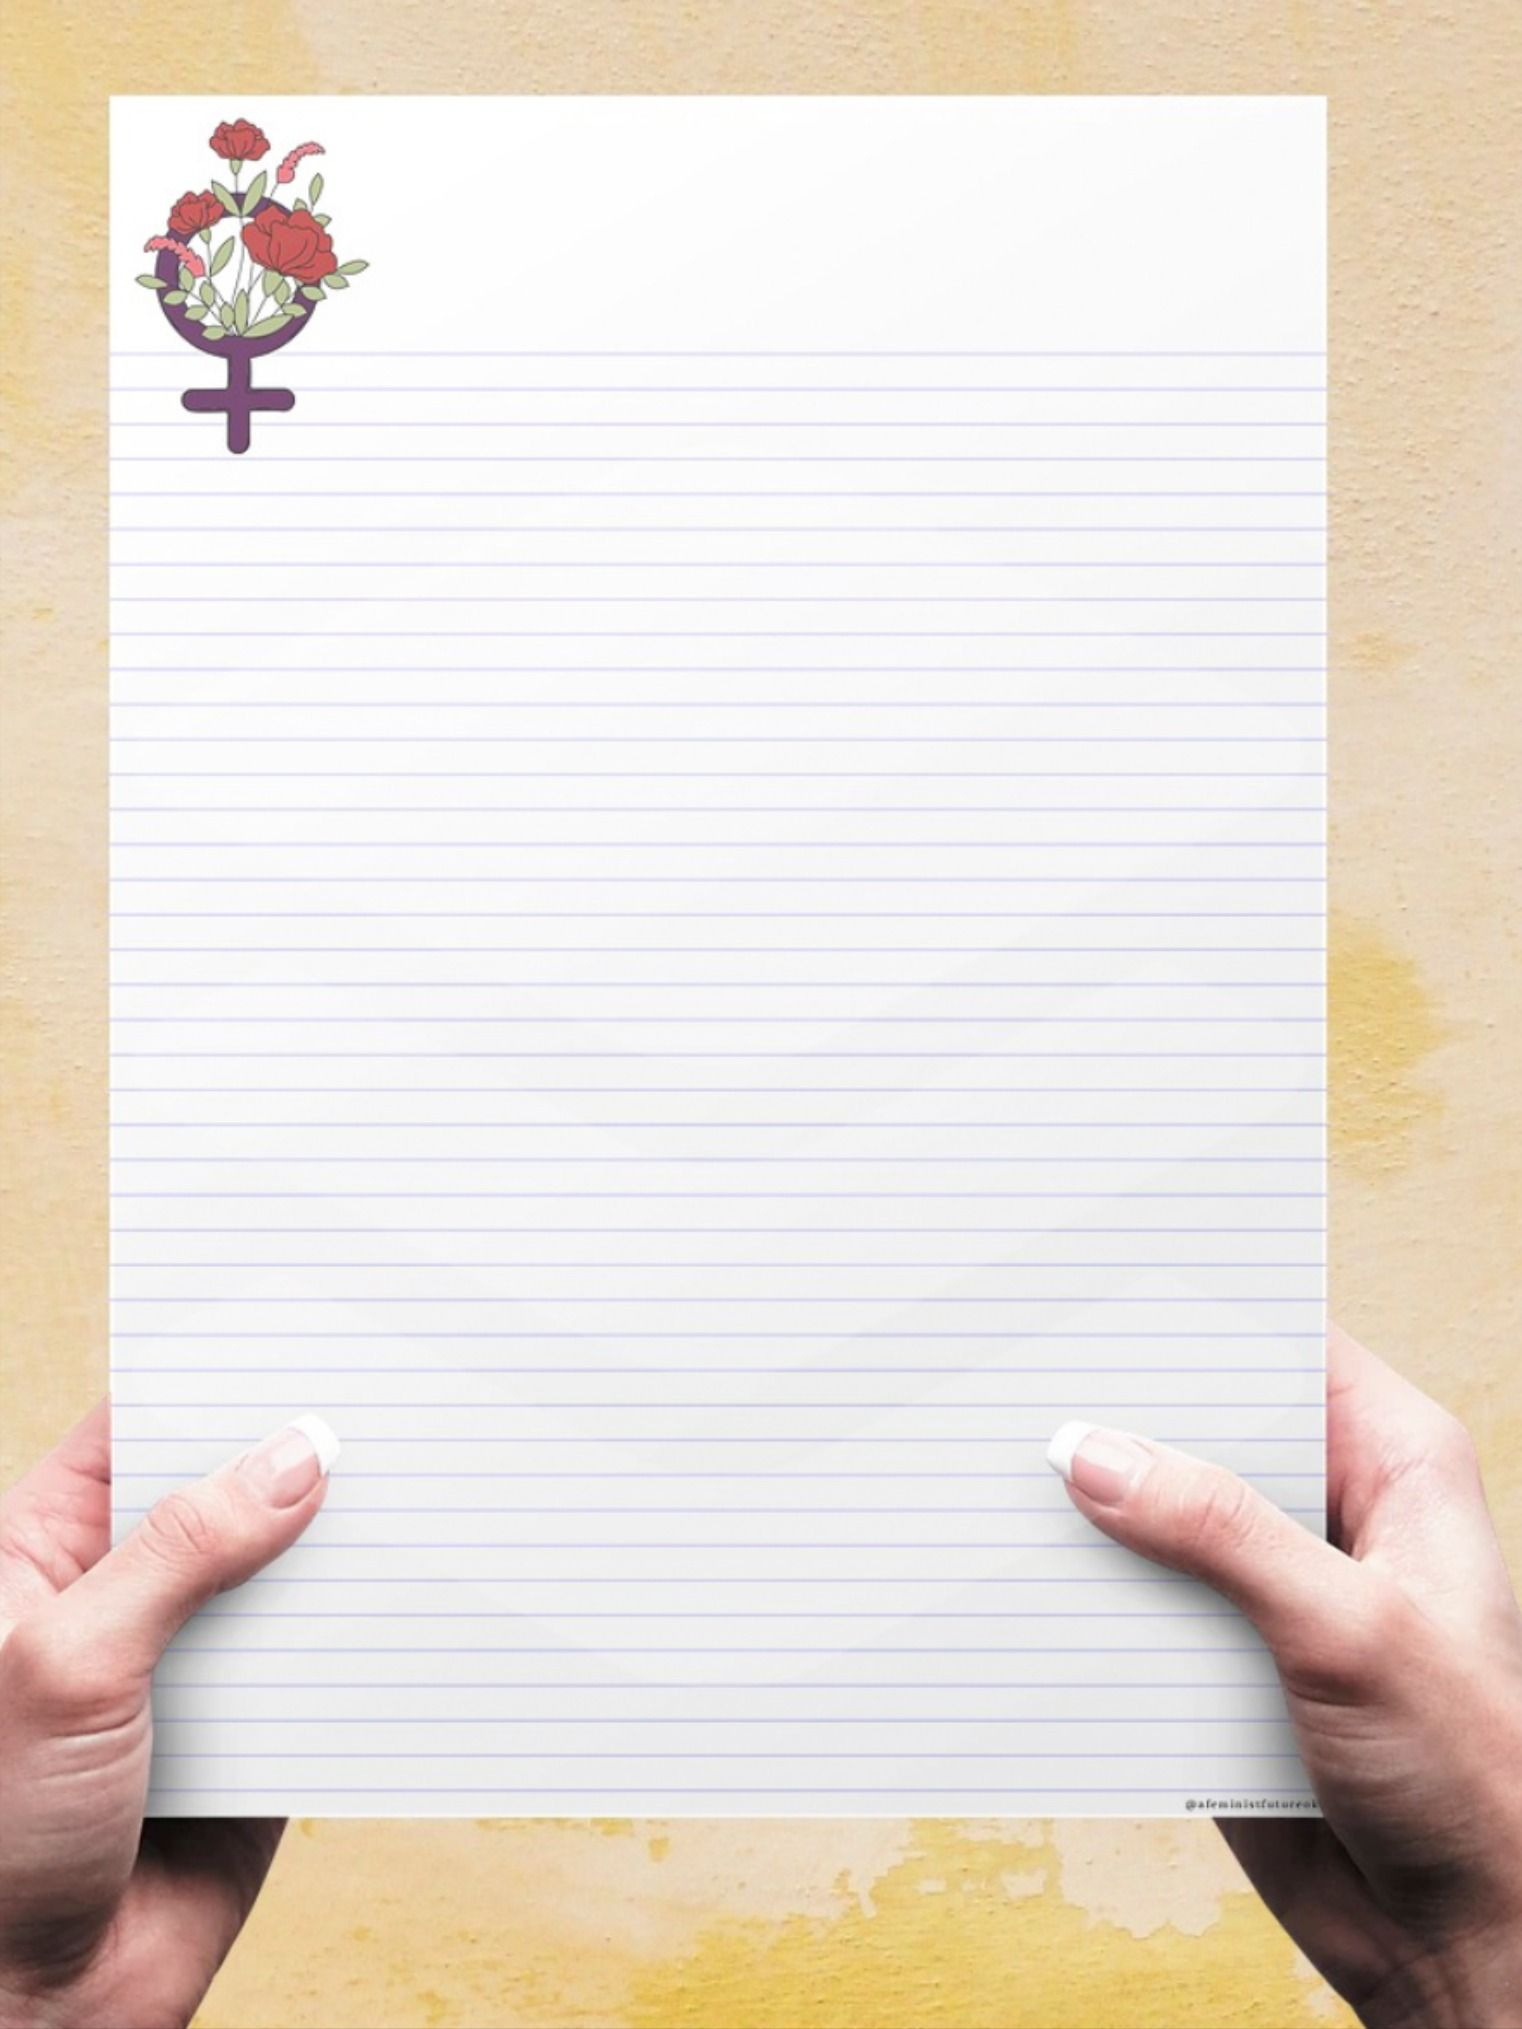 FEMINIST SYMBOL lined paper. Student note taking, writing